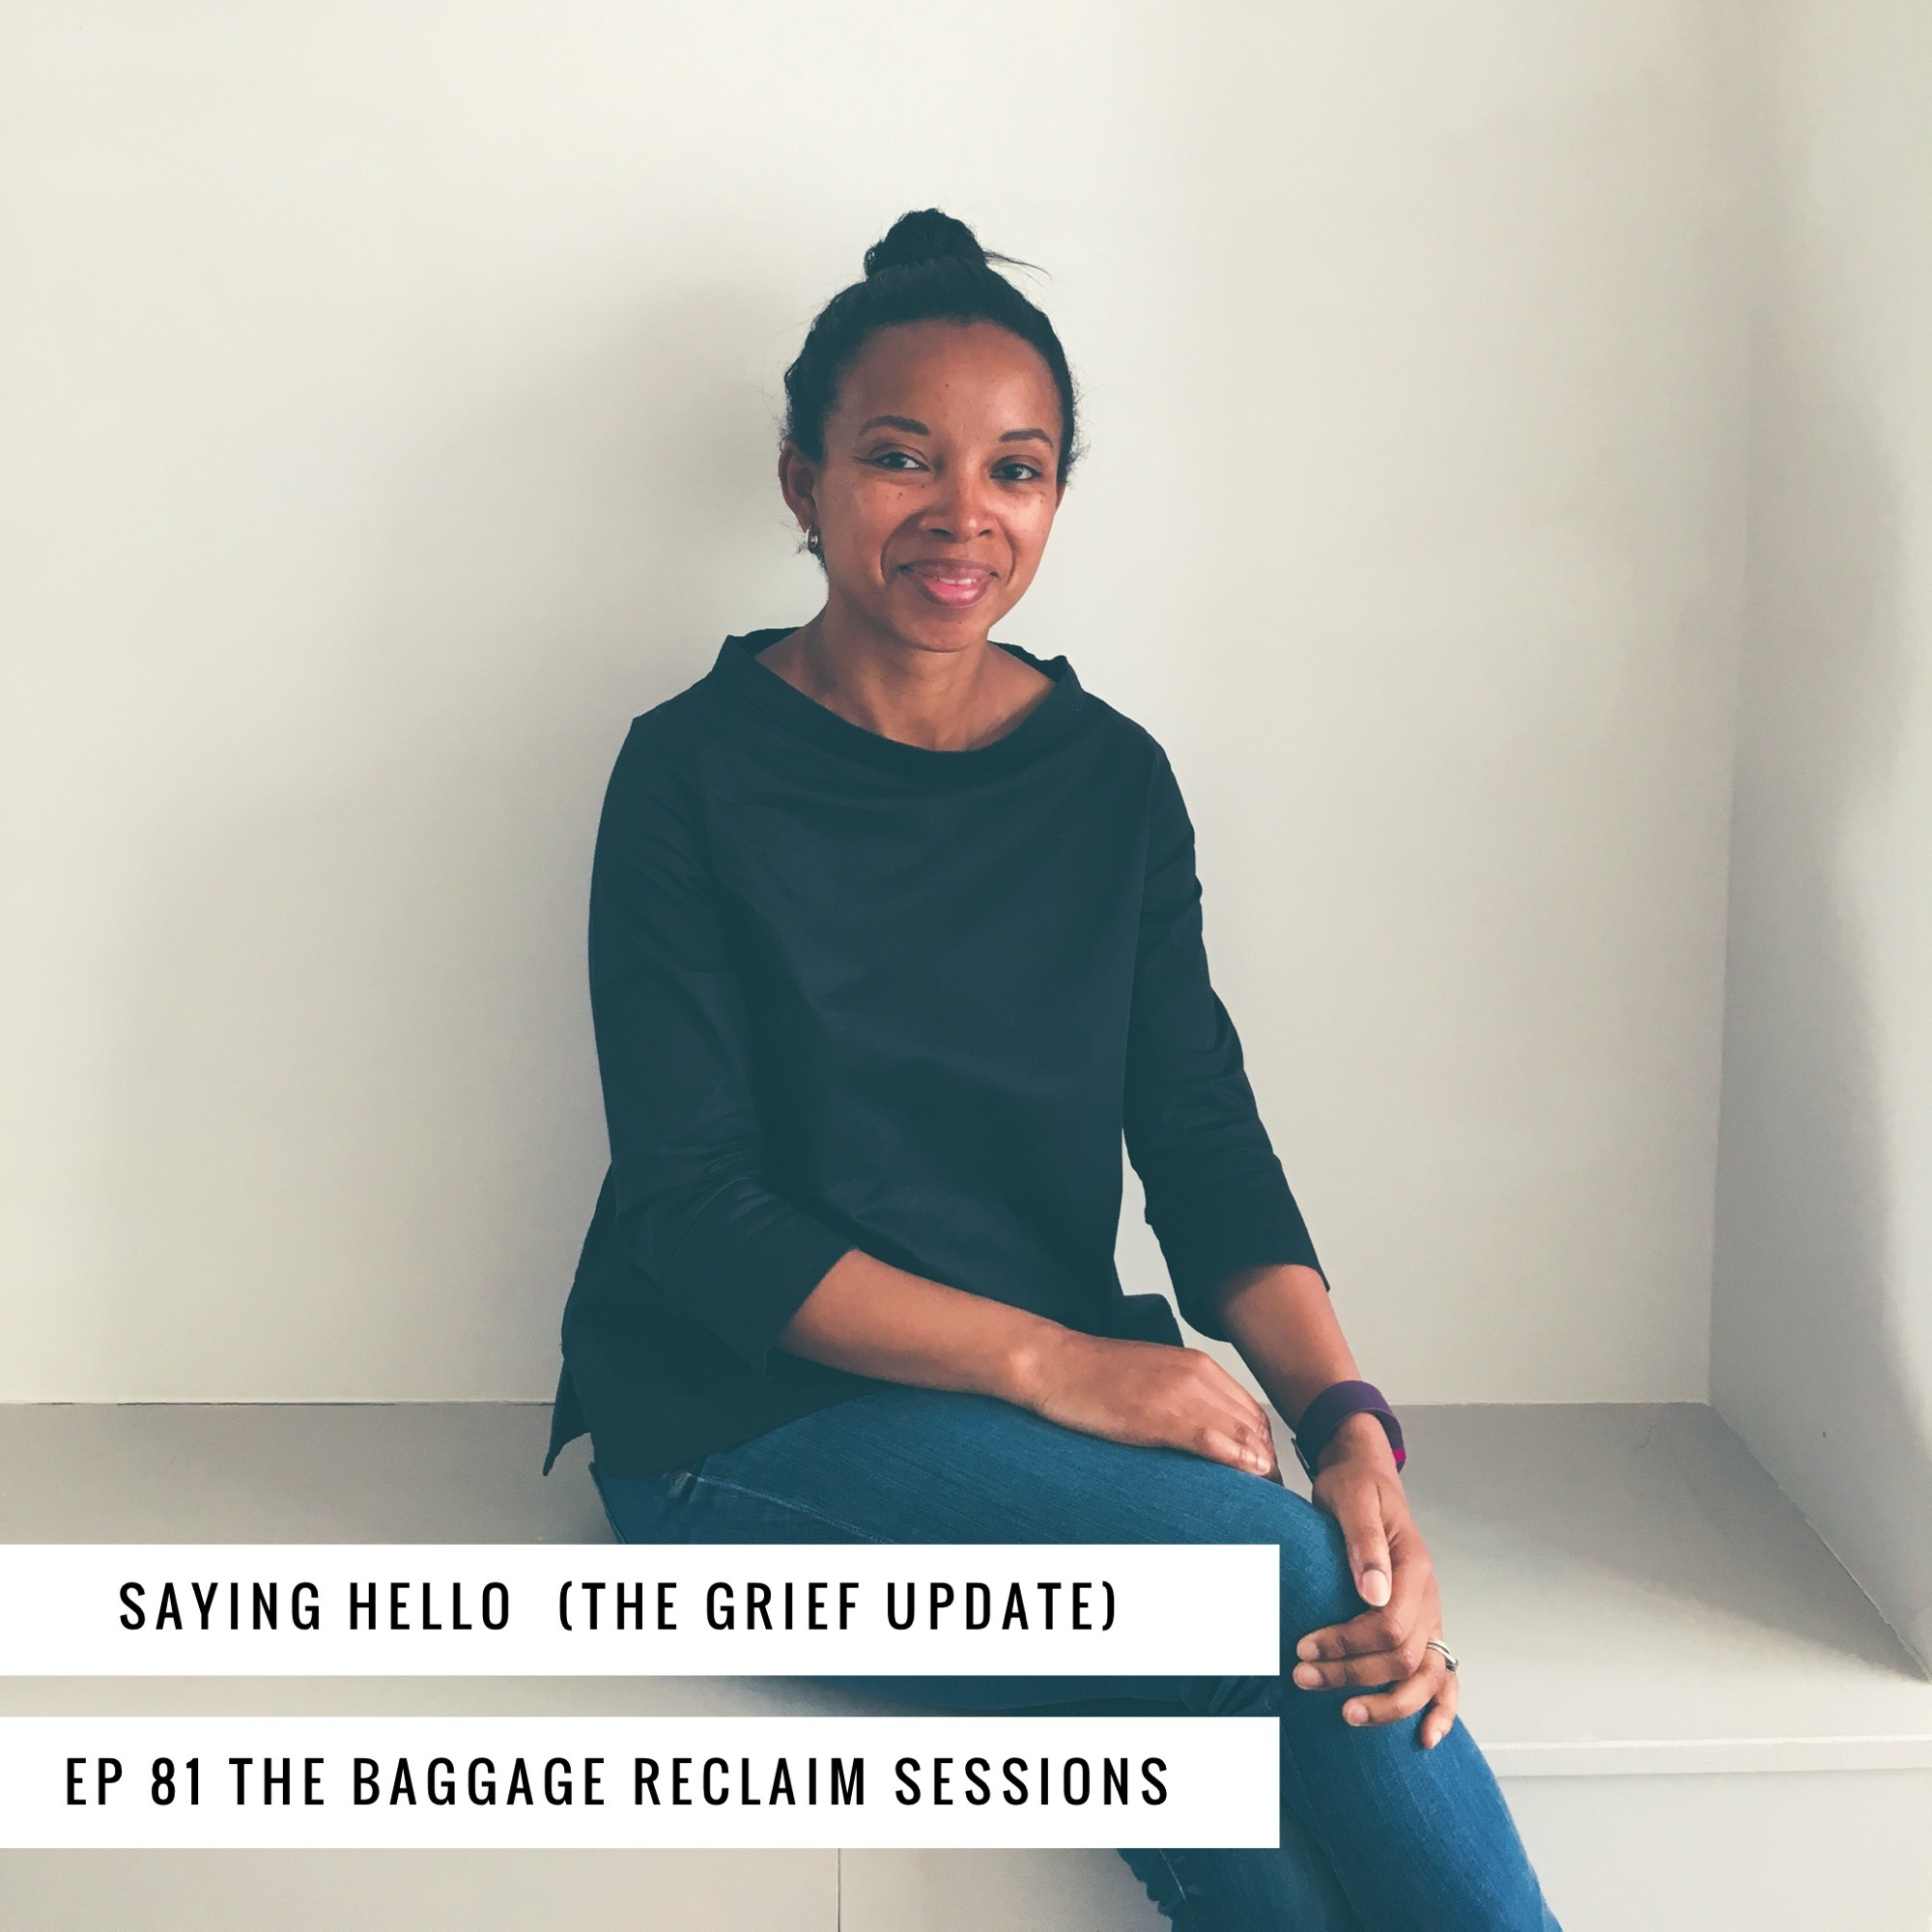 'Saying Hello', The grief update, episode 81, The Baggage Reclaim Sessions